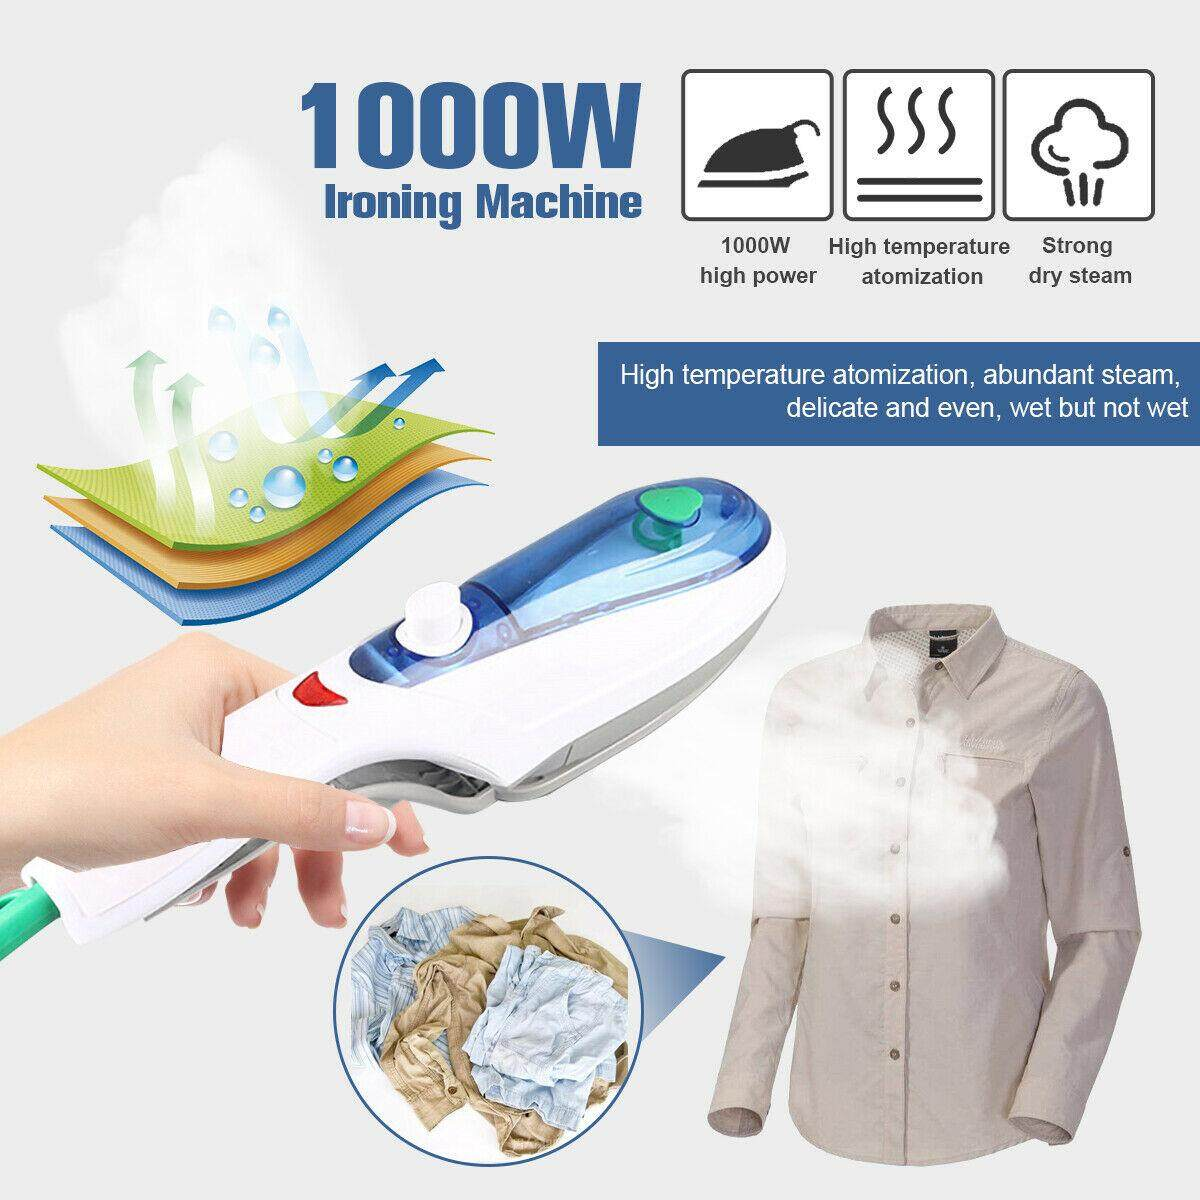 Portable Household Appliances Handheld Steam Iron Garment Fabric Laundry Cloth Wrinkle For Clothes 230V UK Plug 1000W